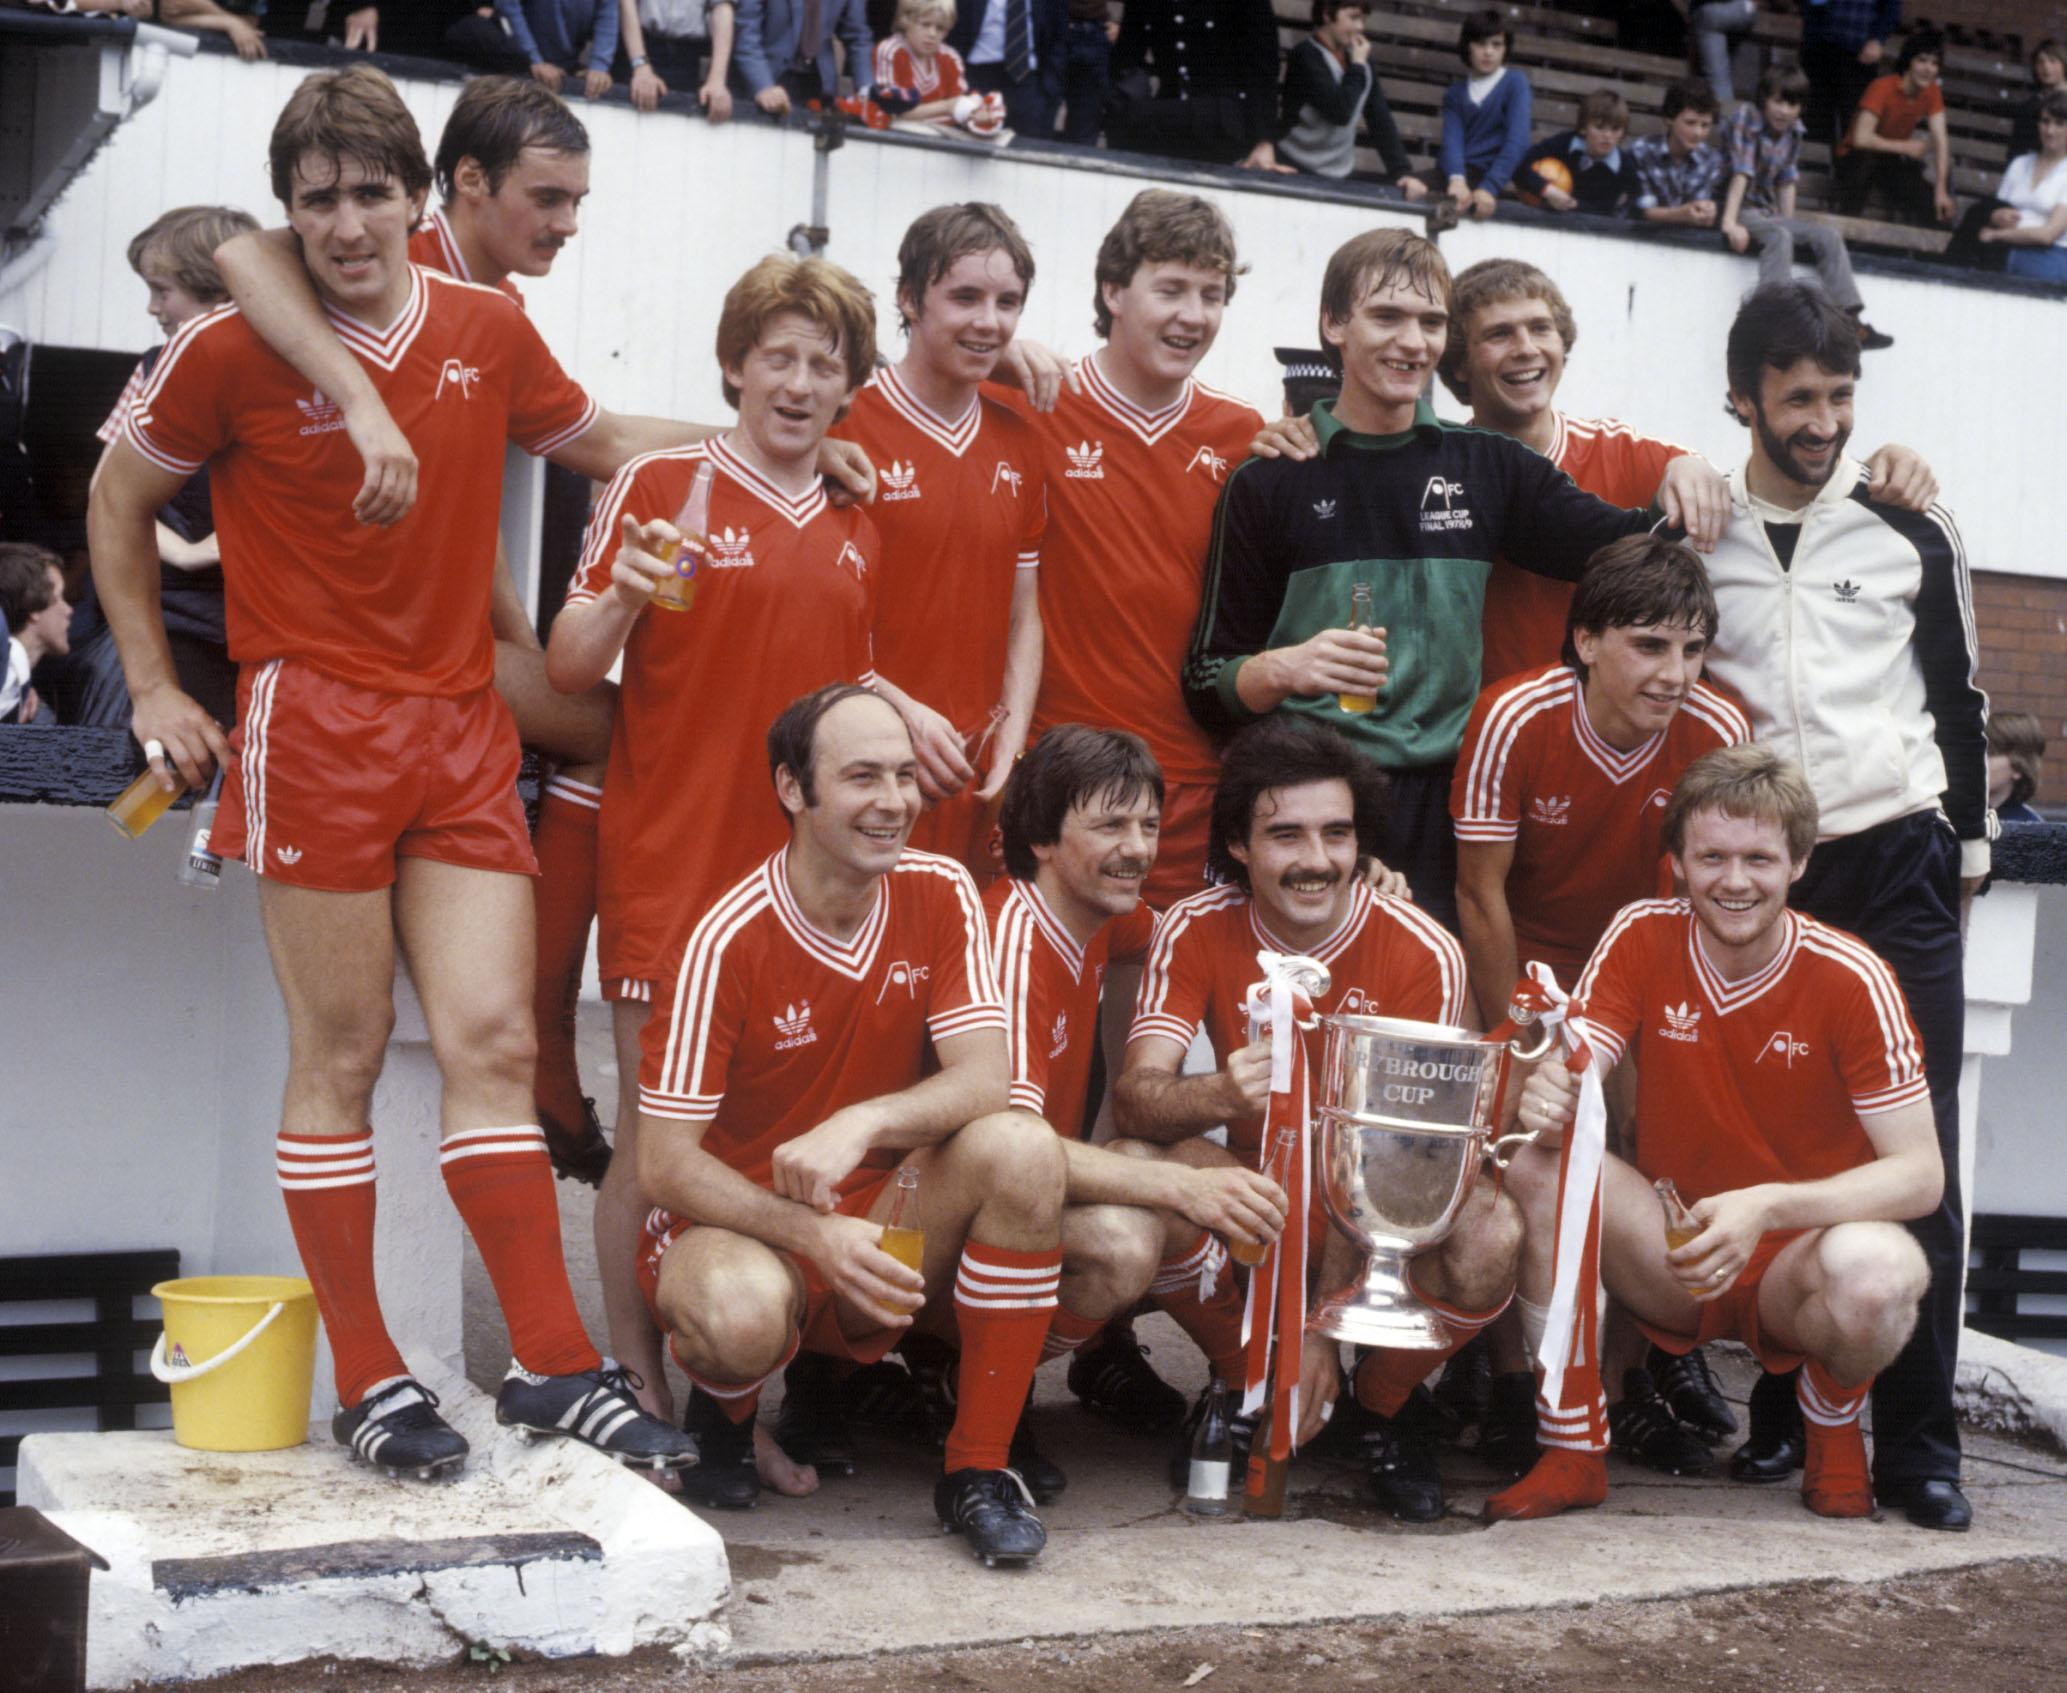 The Aberdeen players celebrate winning the Drybrough Cup in 1980. Back row from left: Mark McGhee, Andy Watson, Gordon Strachan, Steve Cowan, Willie Garner, Jim Leighton, Doug Considine and Ian Scanlon. Front row from left: Drew Jarvie, Stuart Kennedy, Willie Miller, John Hewitt and John McMaster.